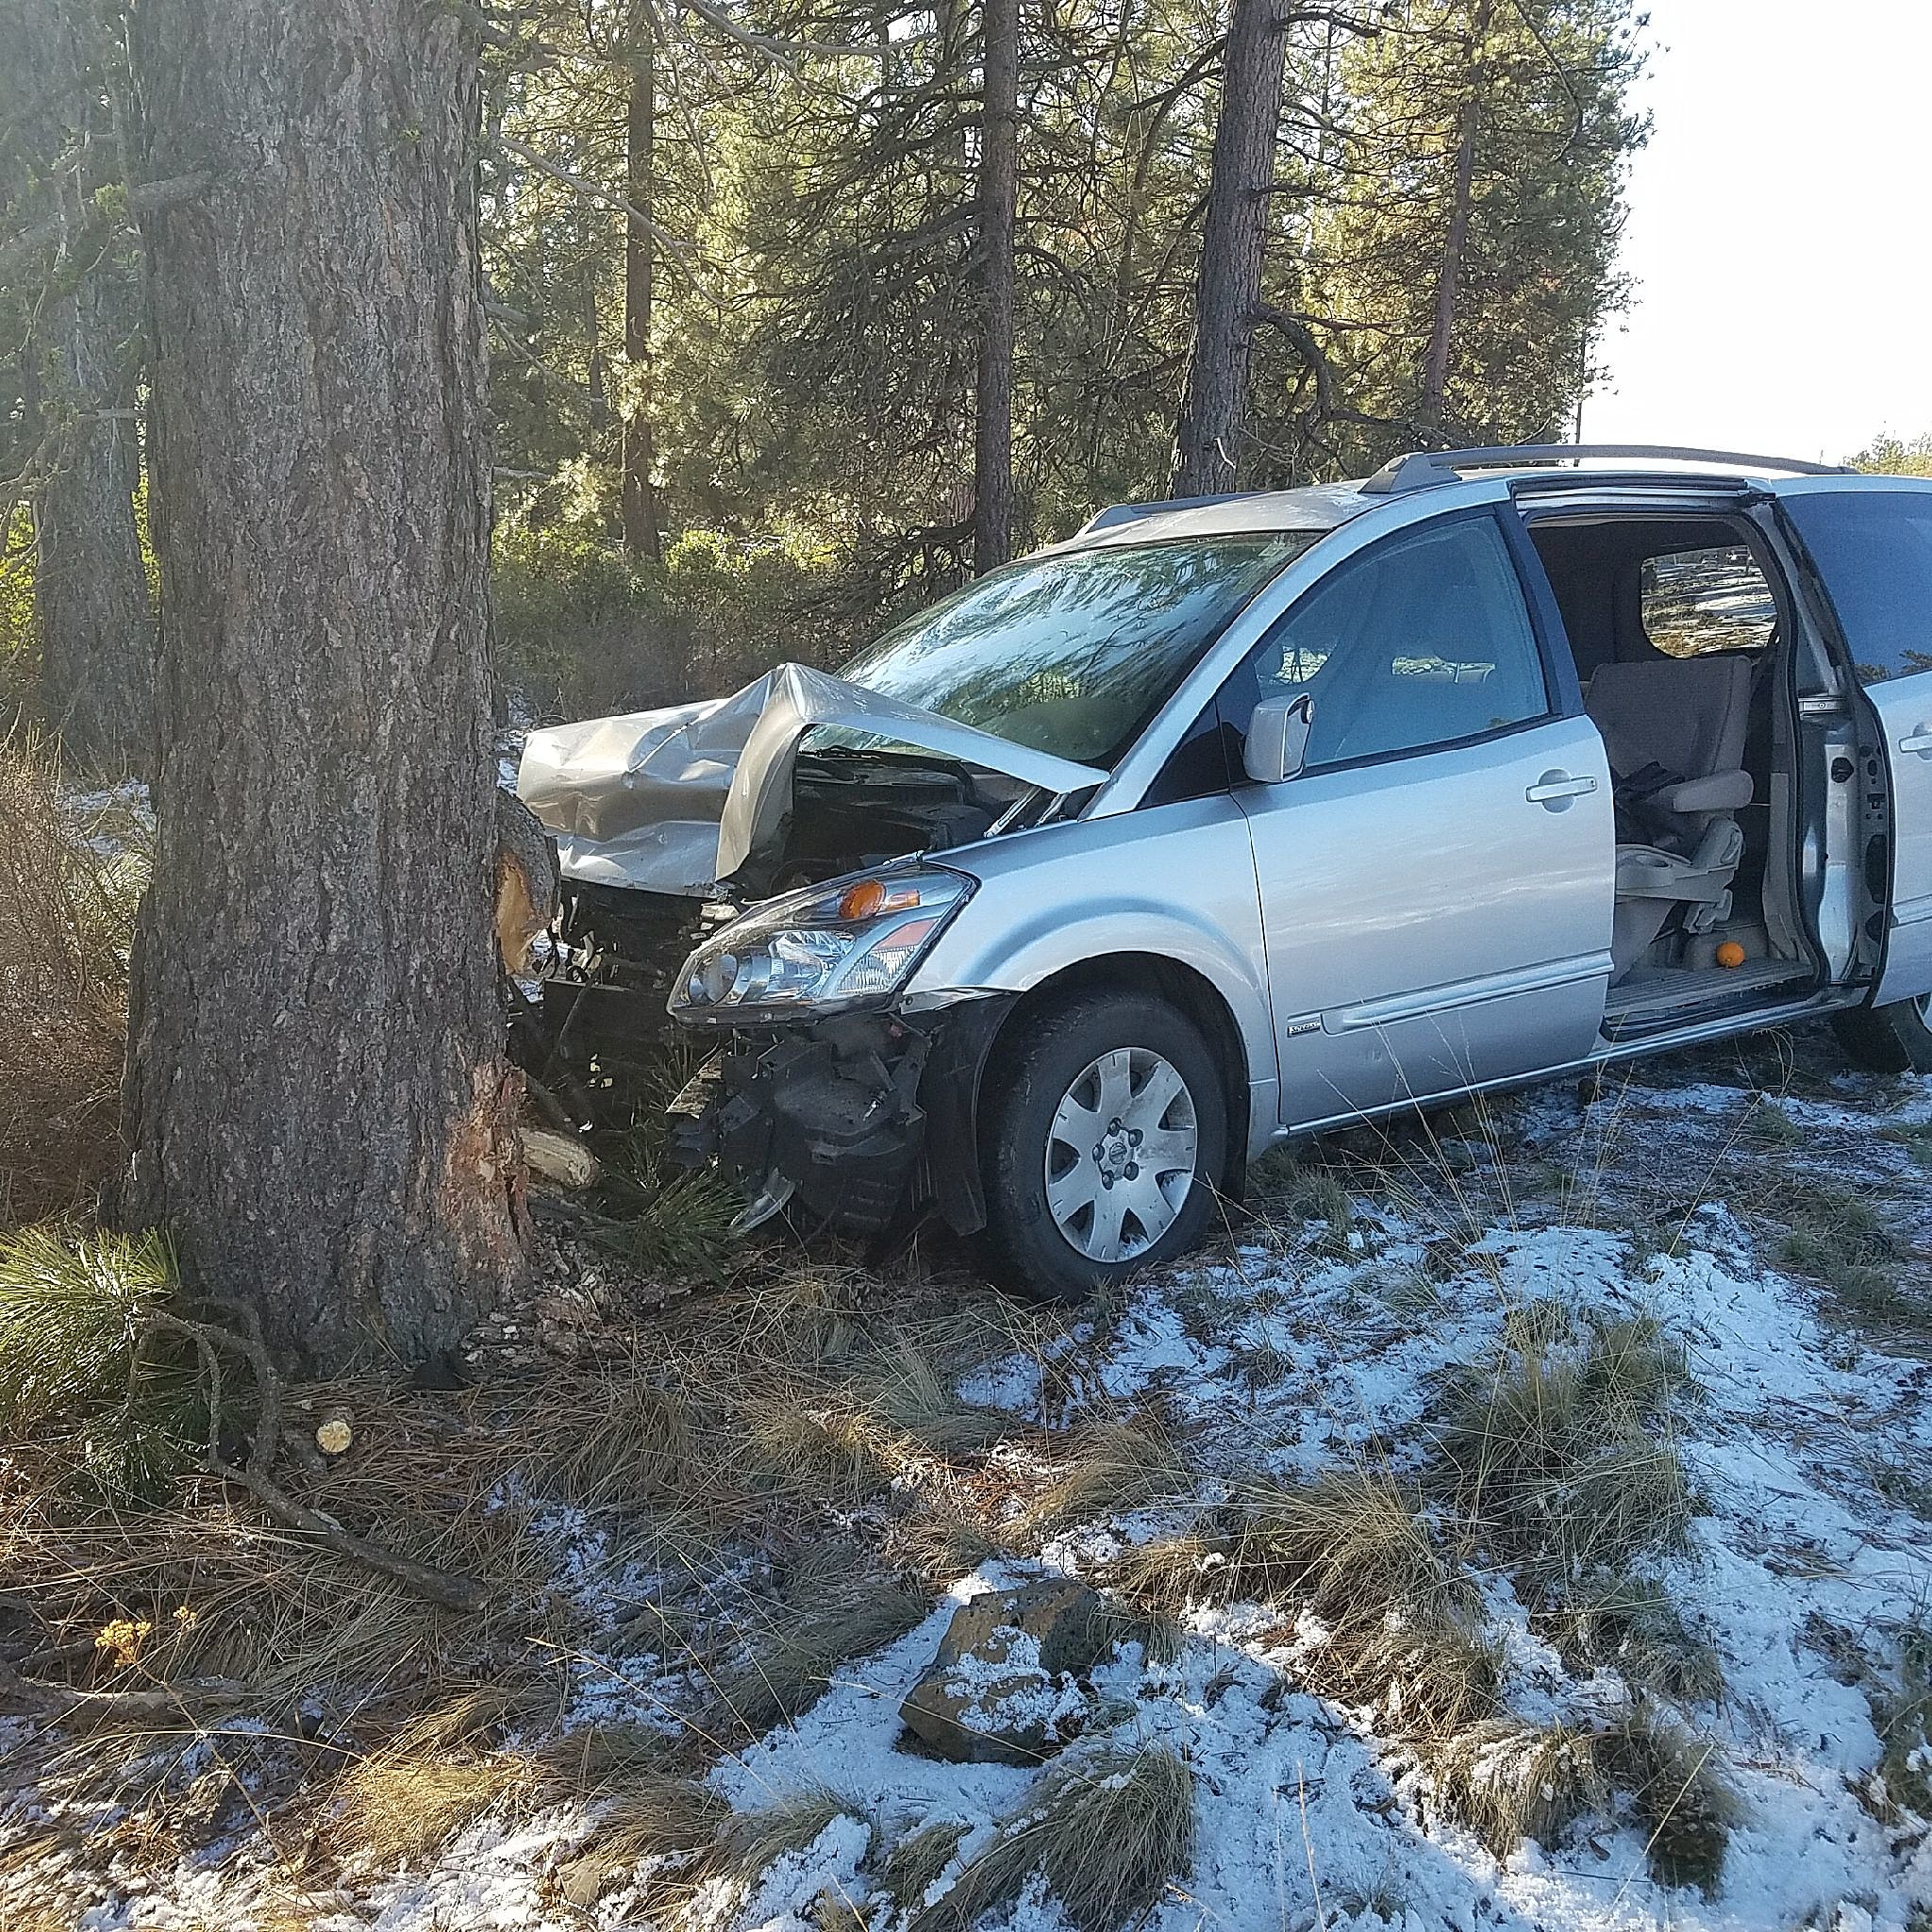 Witnesses Sought For Fatal Oregon Crash Van Rammed Car Off Road